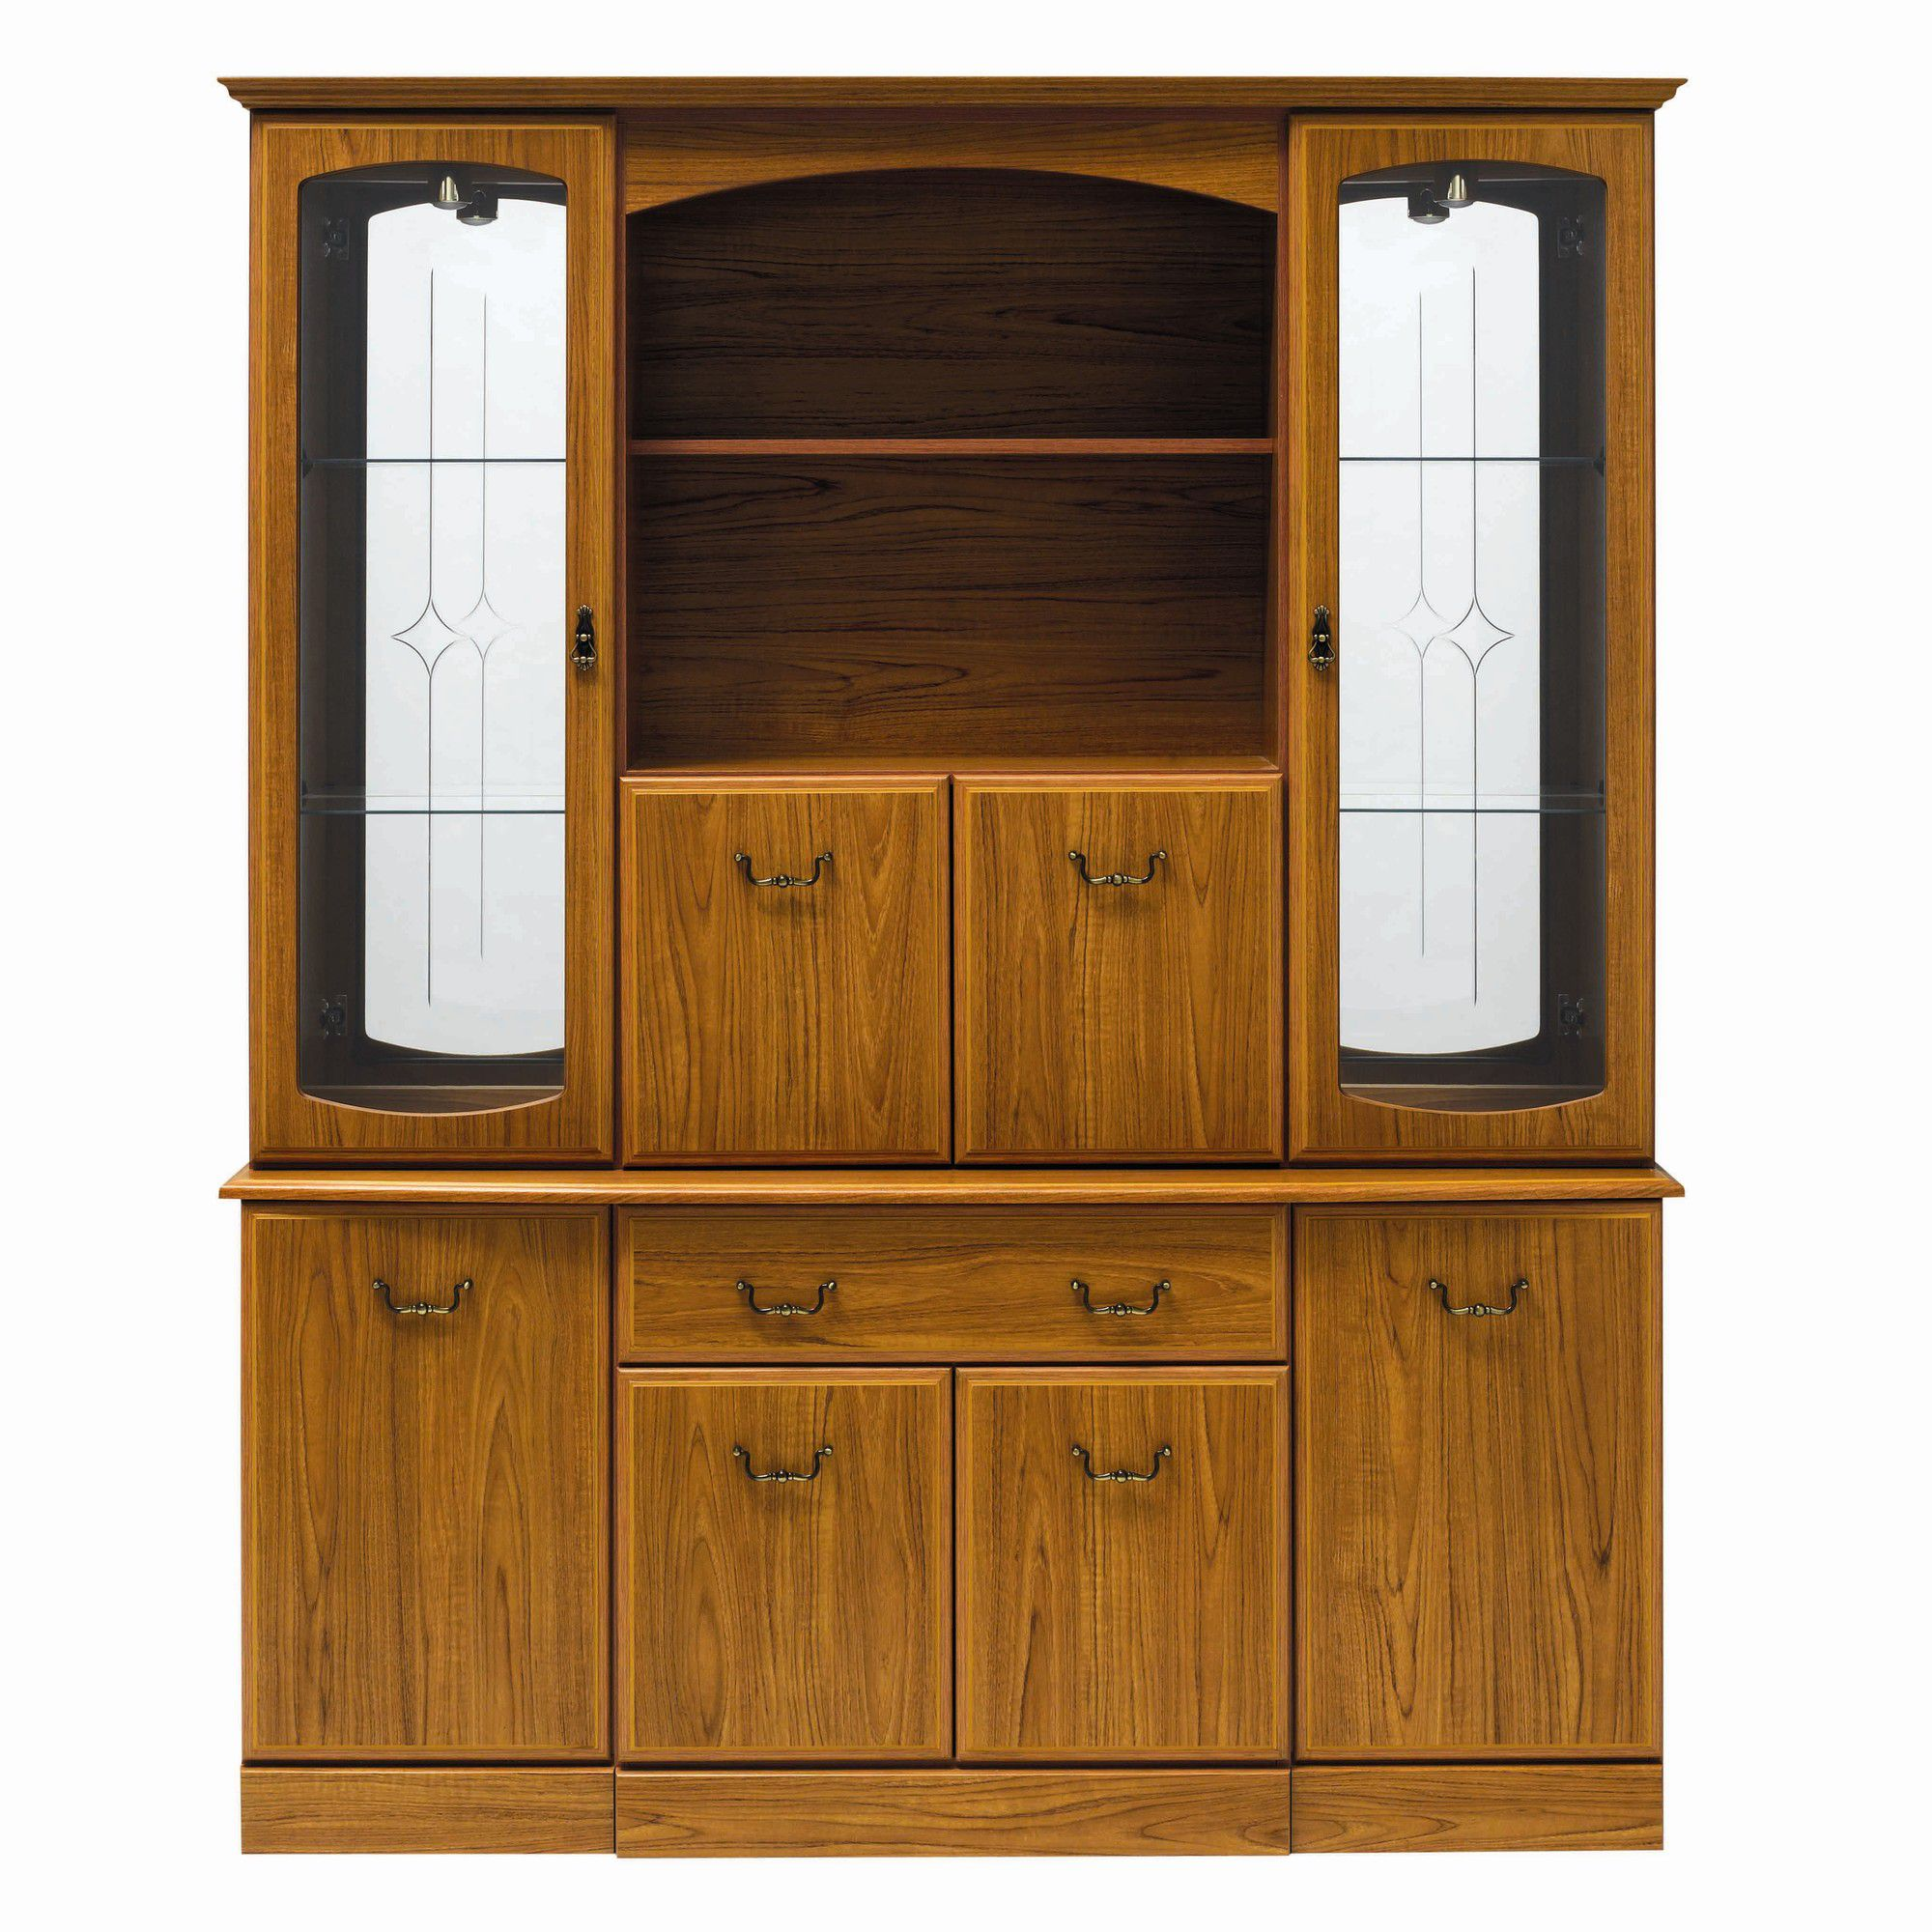 Caxton Tennyson 152 cm Display Cabinet in Teak at Tesco Direct